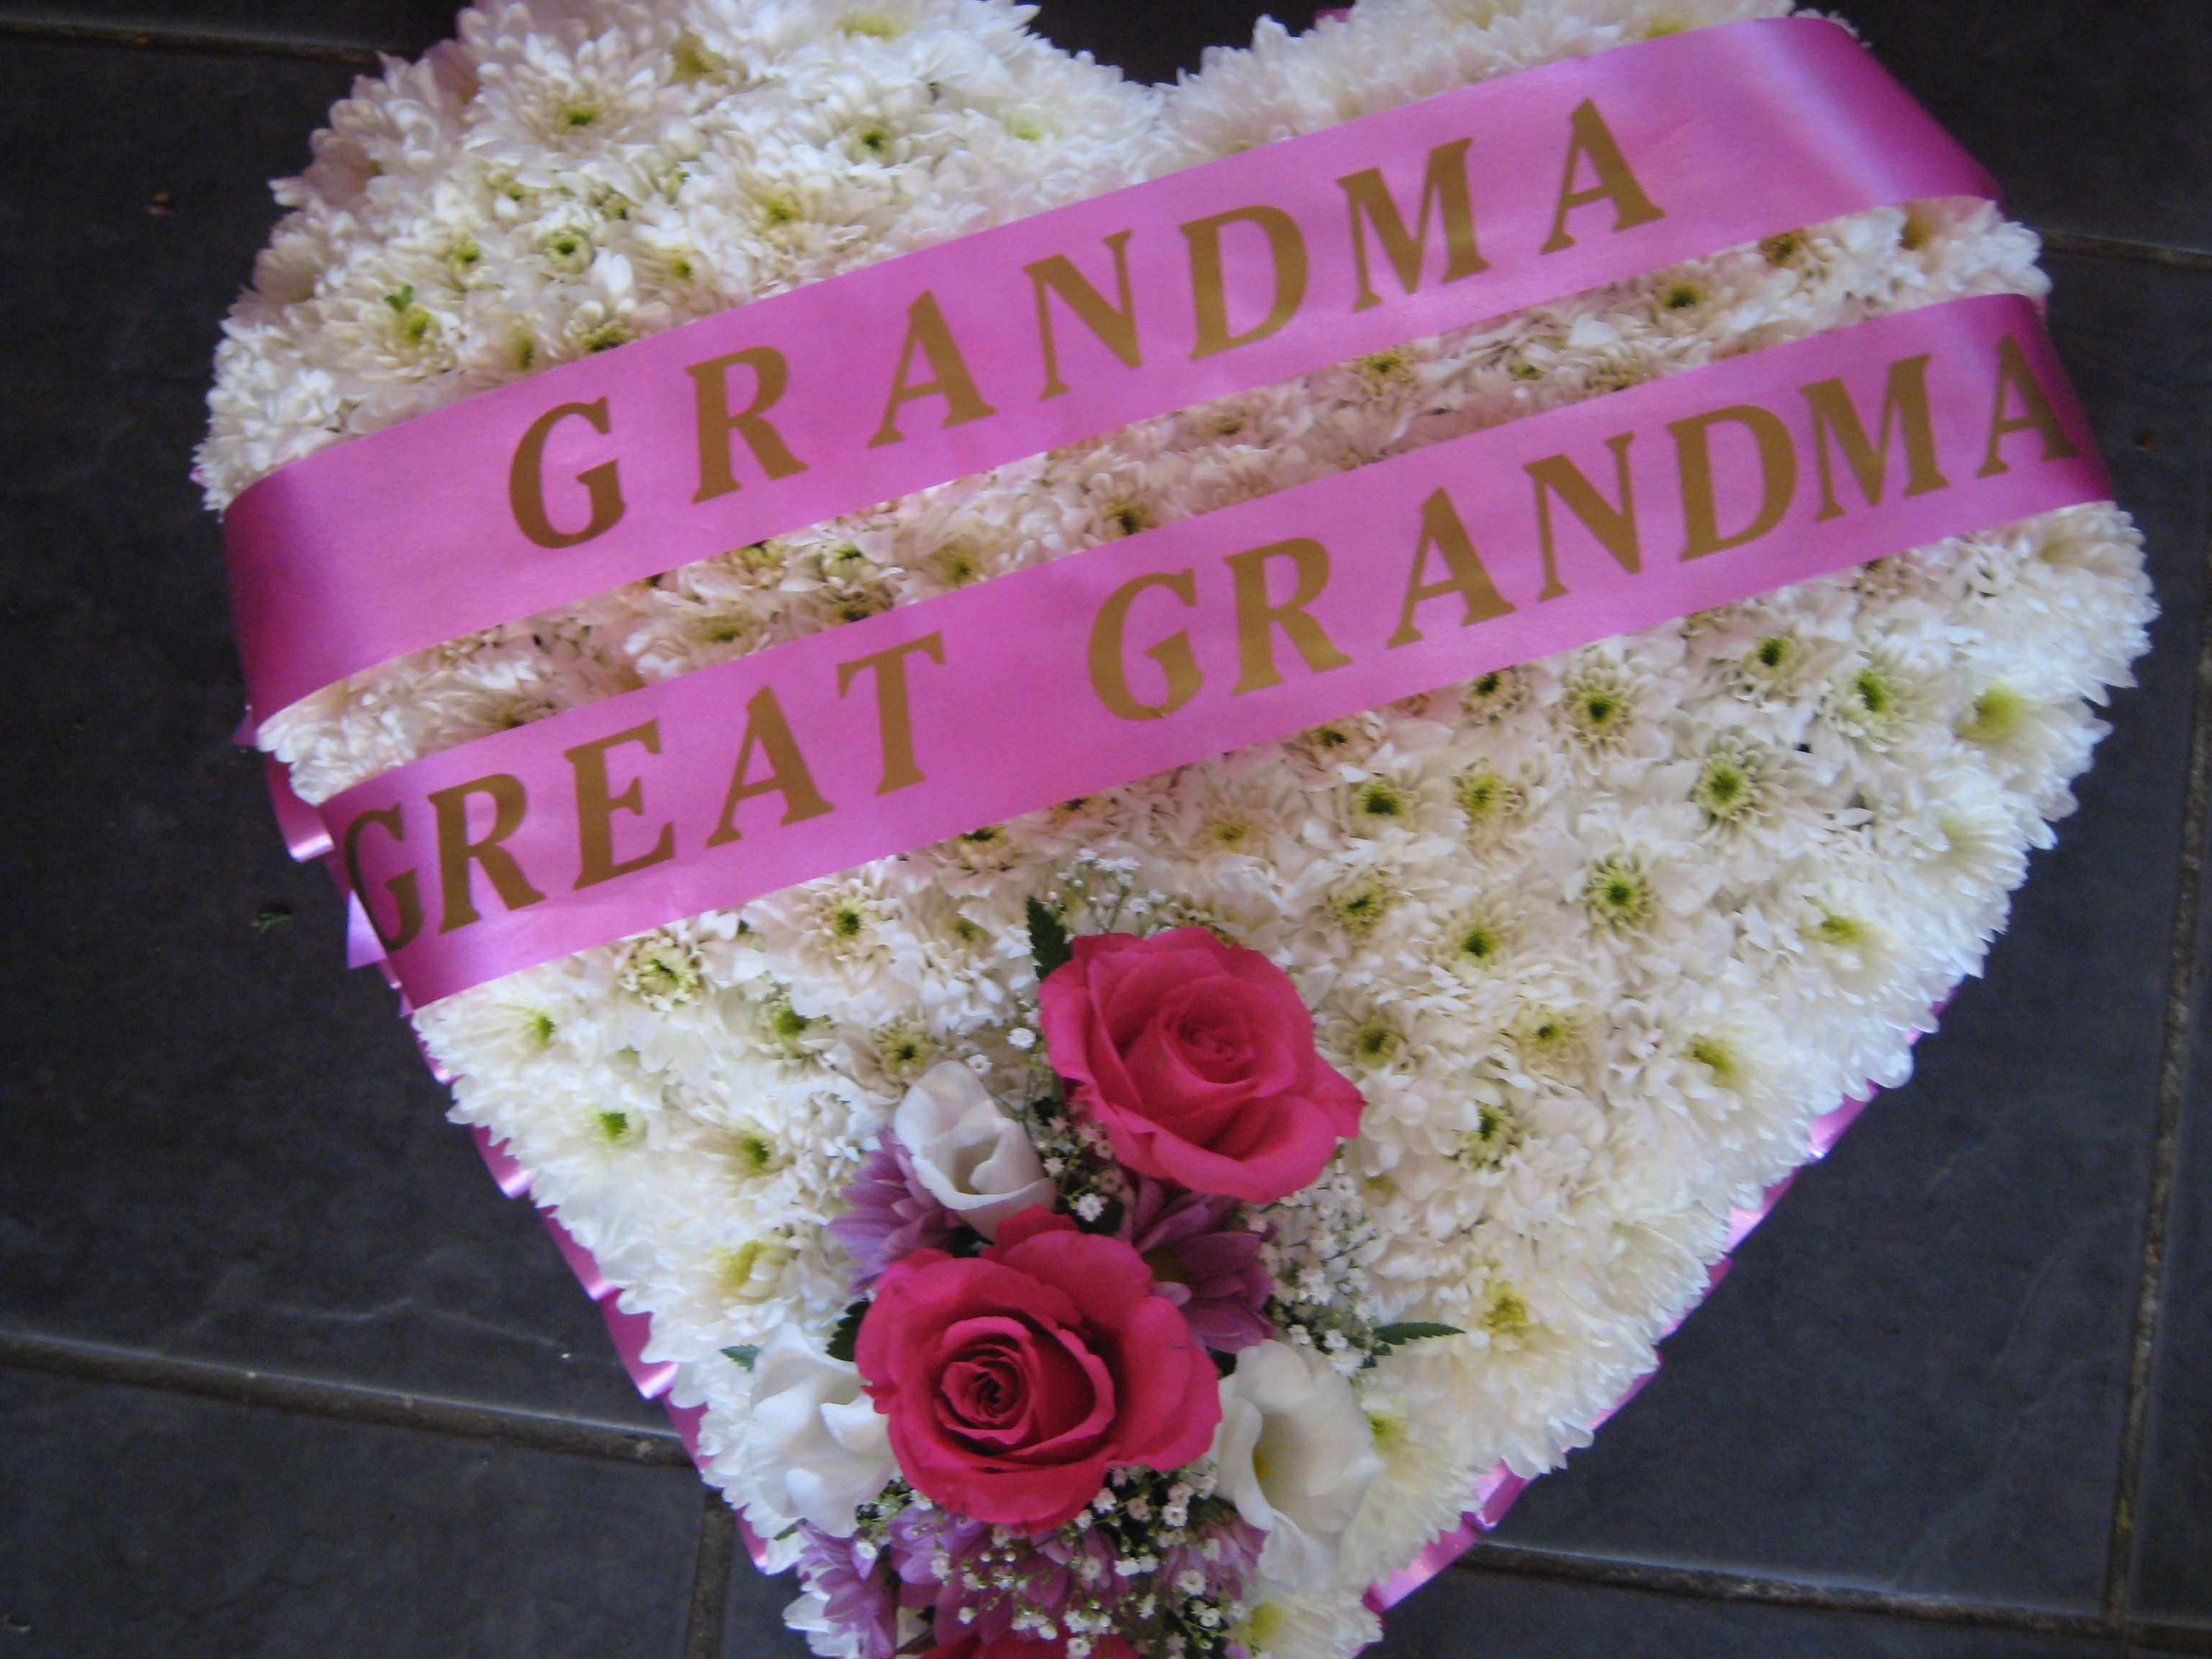 Jacaranda flowers hearts cushions pillow funeral tributes click izmirmasajfo Image collections